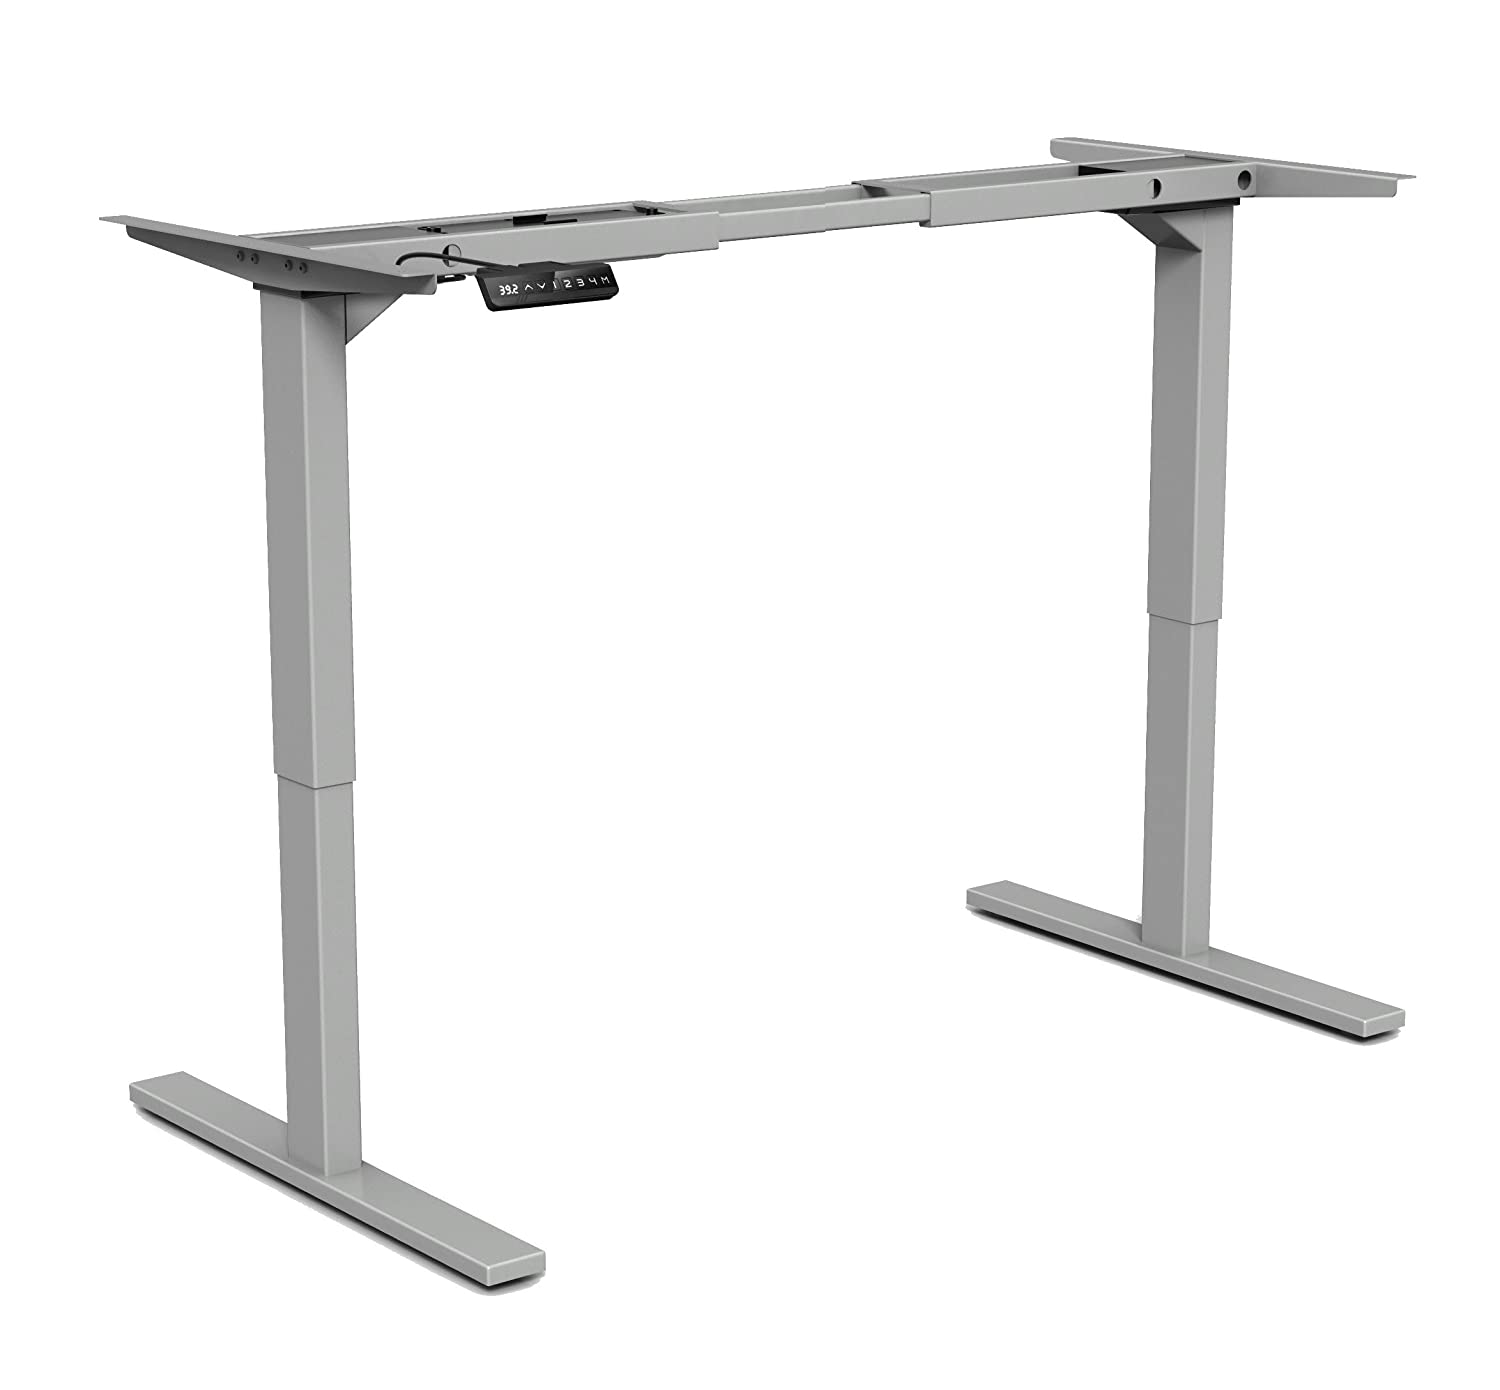 adjustable l dining amazon aluminum living made weight light of com cool legs up stand kitchen dp desk